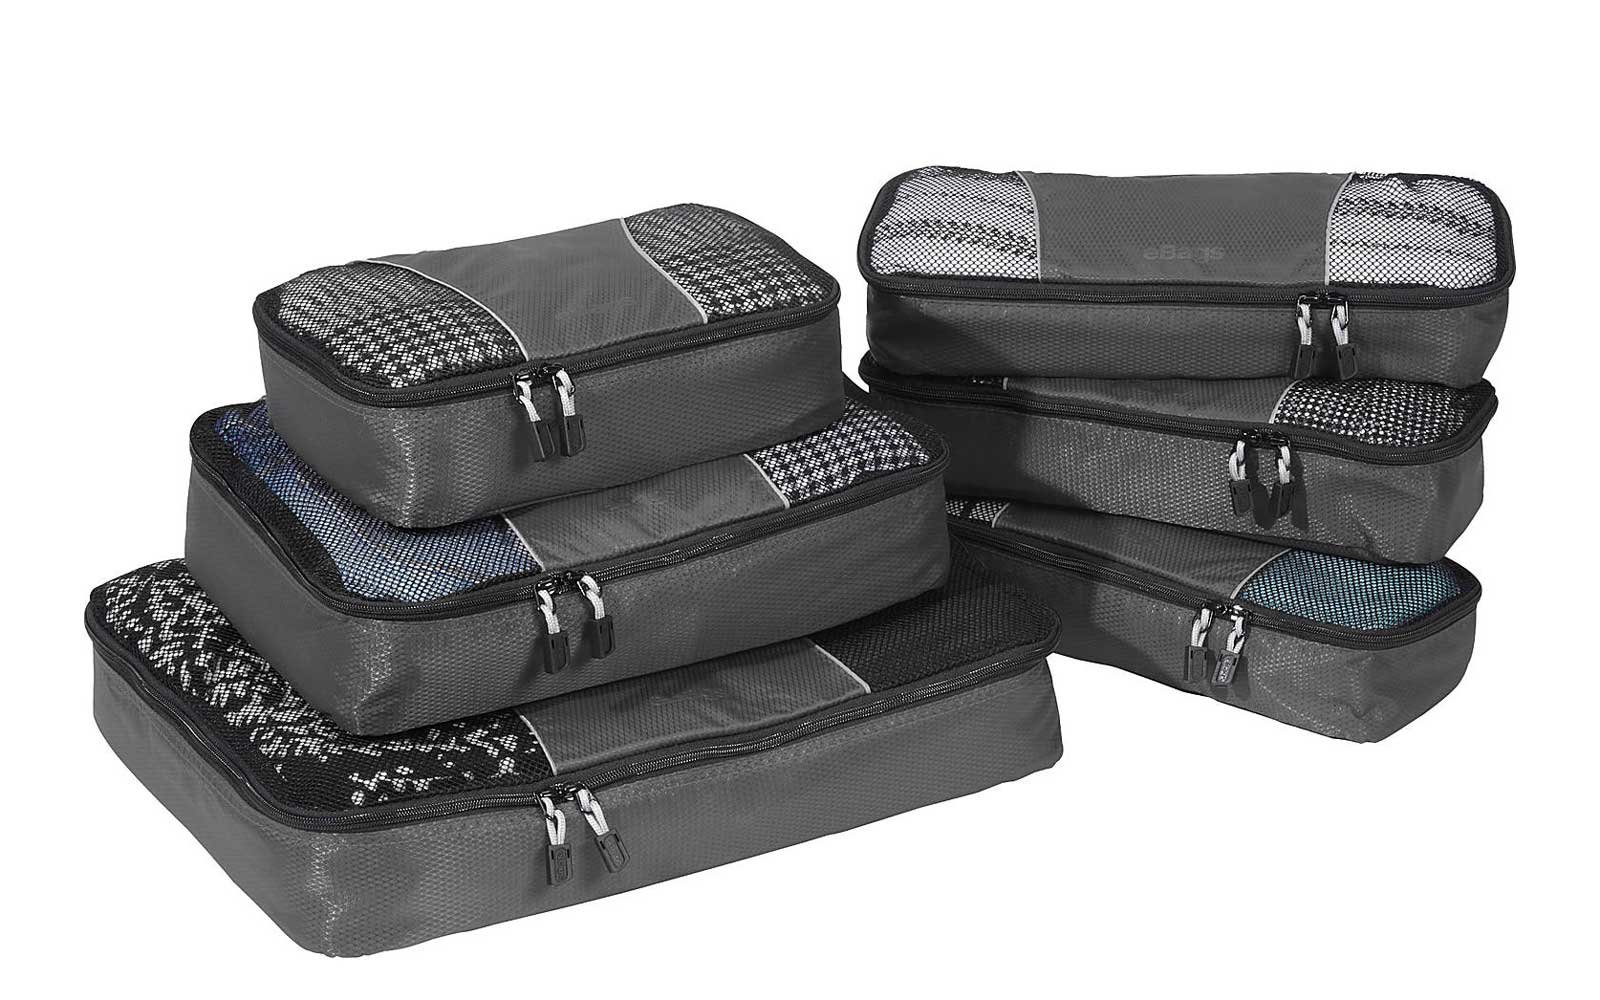 Grey eBags Packing Cubes